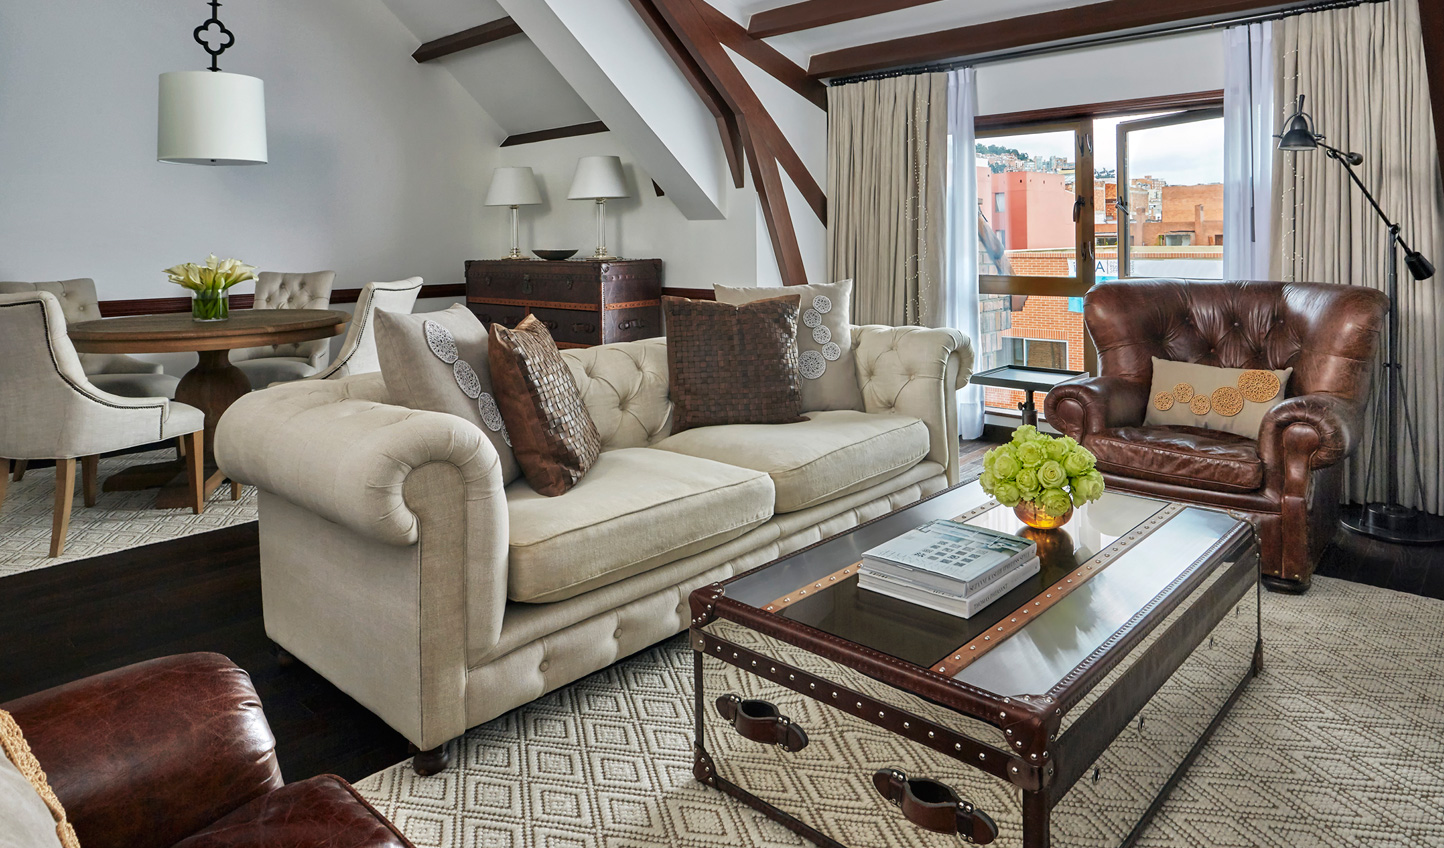 Settle in and feel at home at Four Seasons Casa Medina